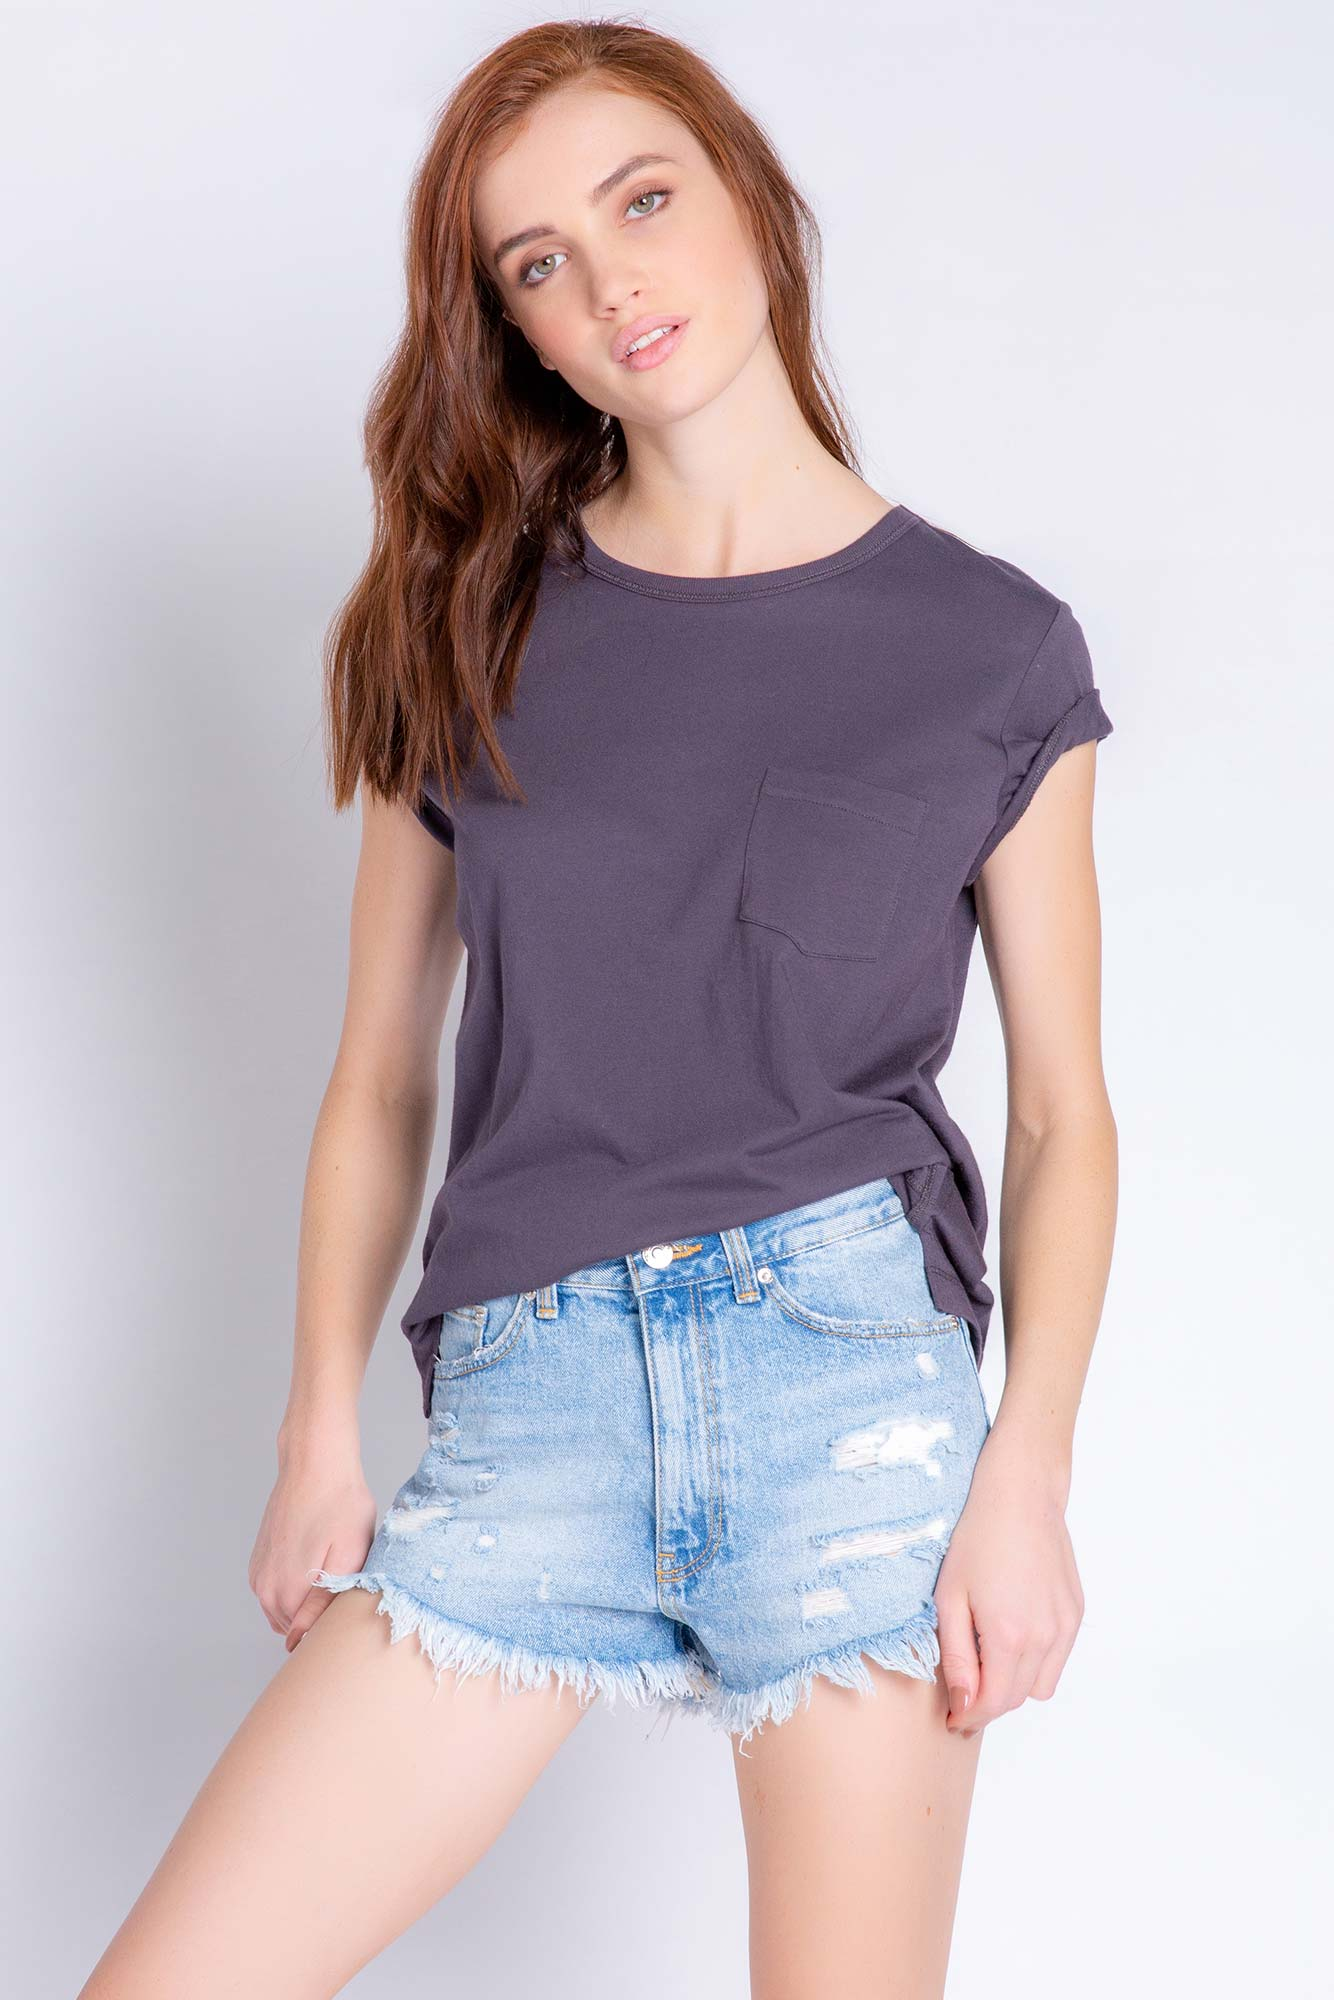 Back To Basics Solid Short Sleeve T-Shirt in Slate